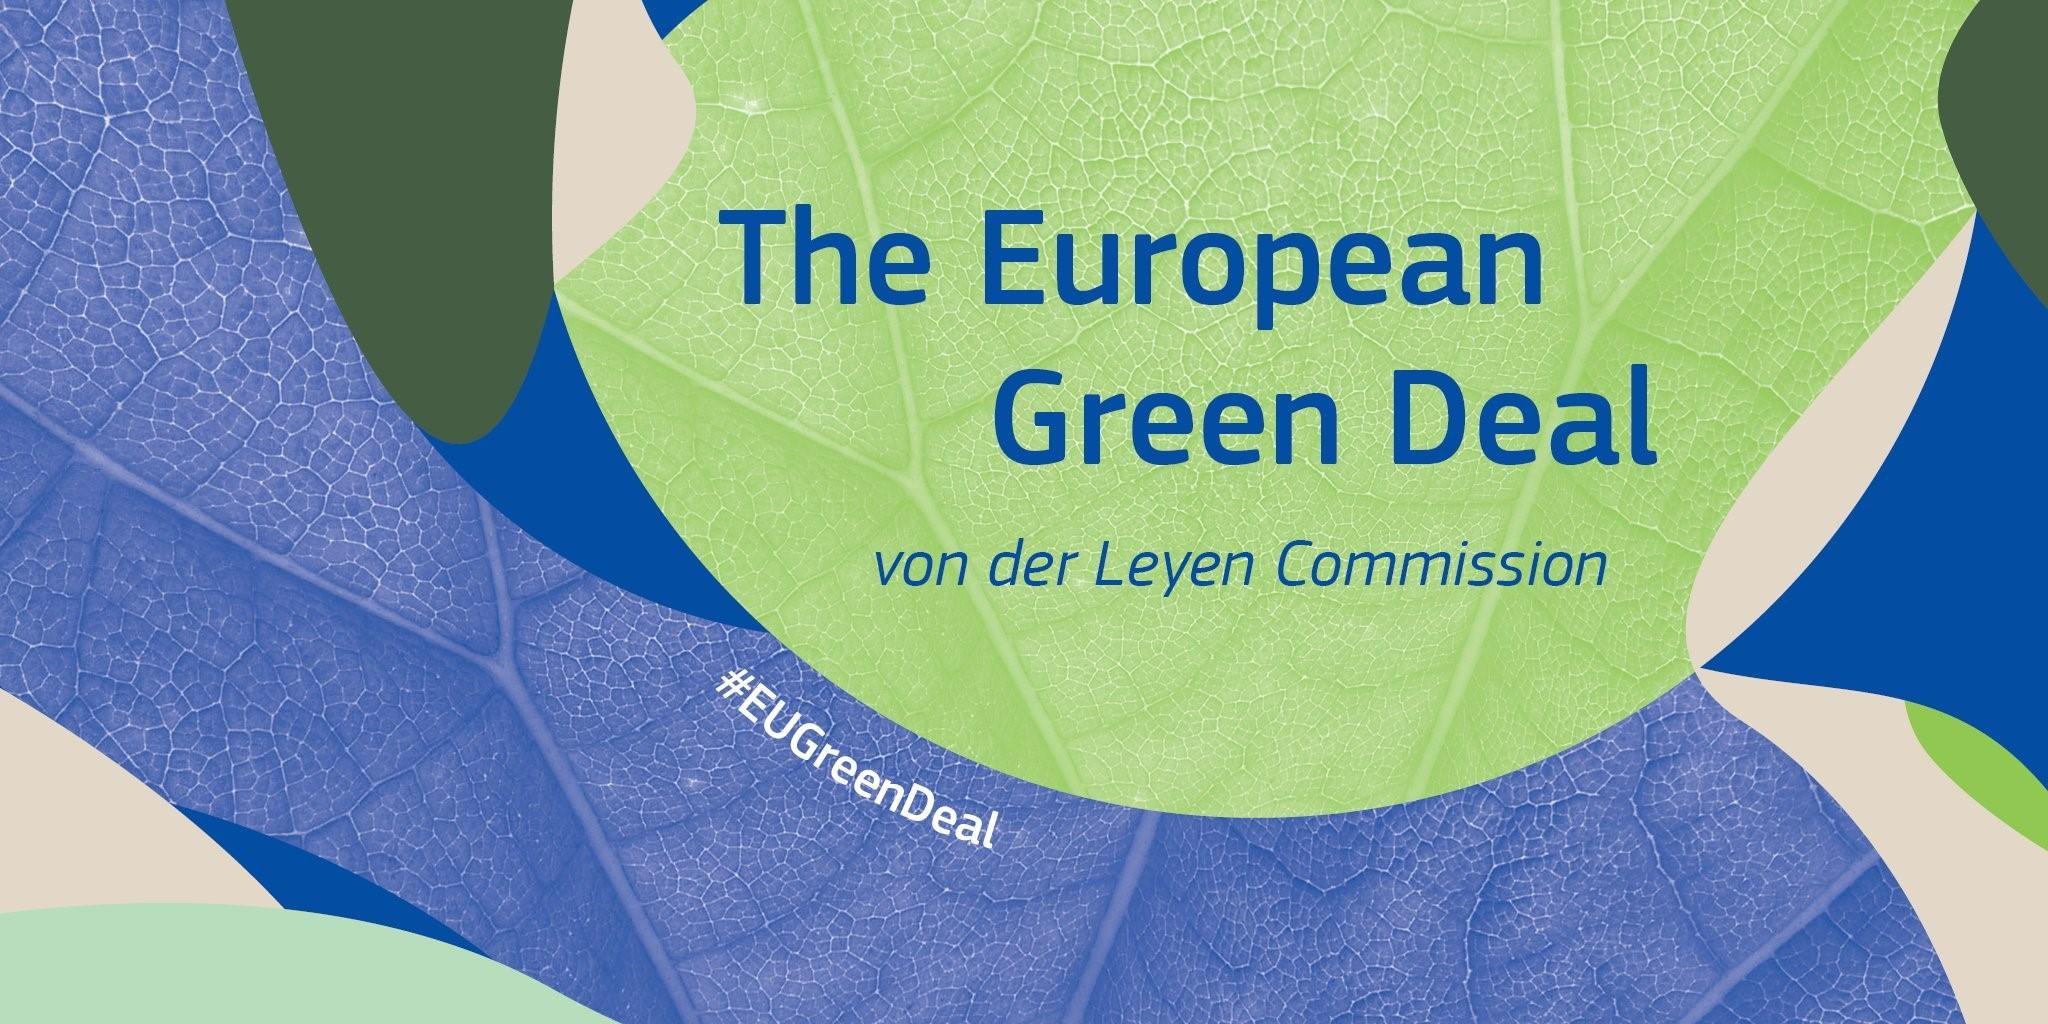 "Foglie blu e verdi con la scritta ""The Europea Green Deal von der Leyen Commission #EUGreenDeal"""